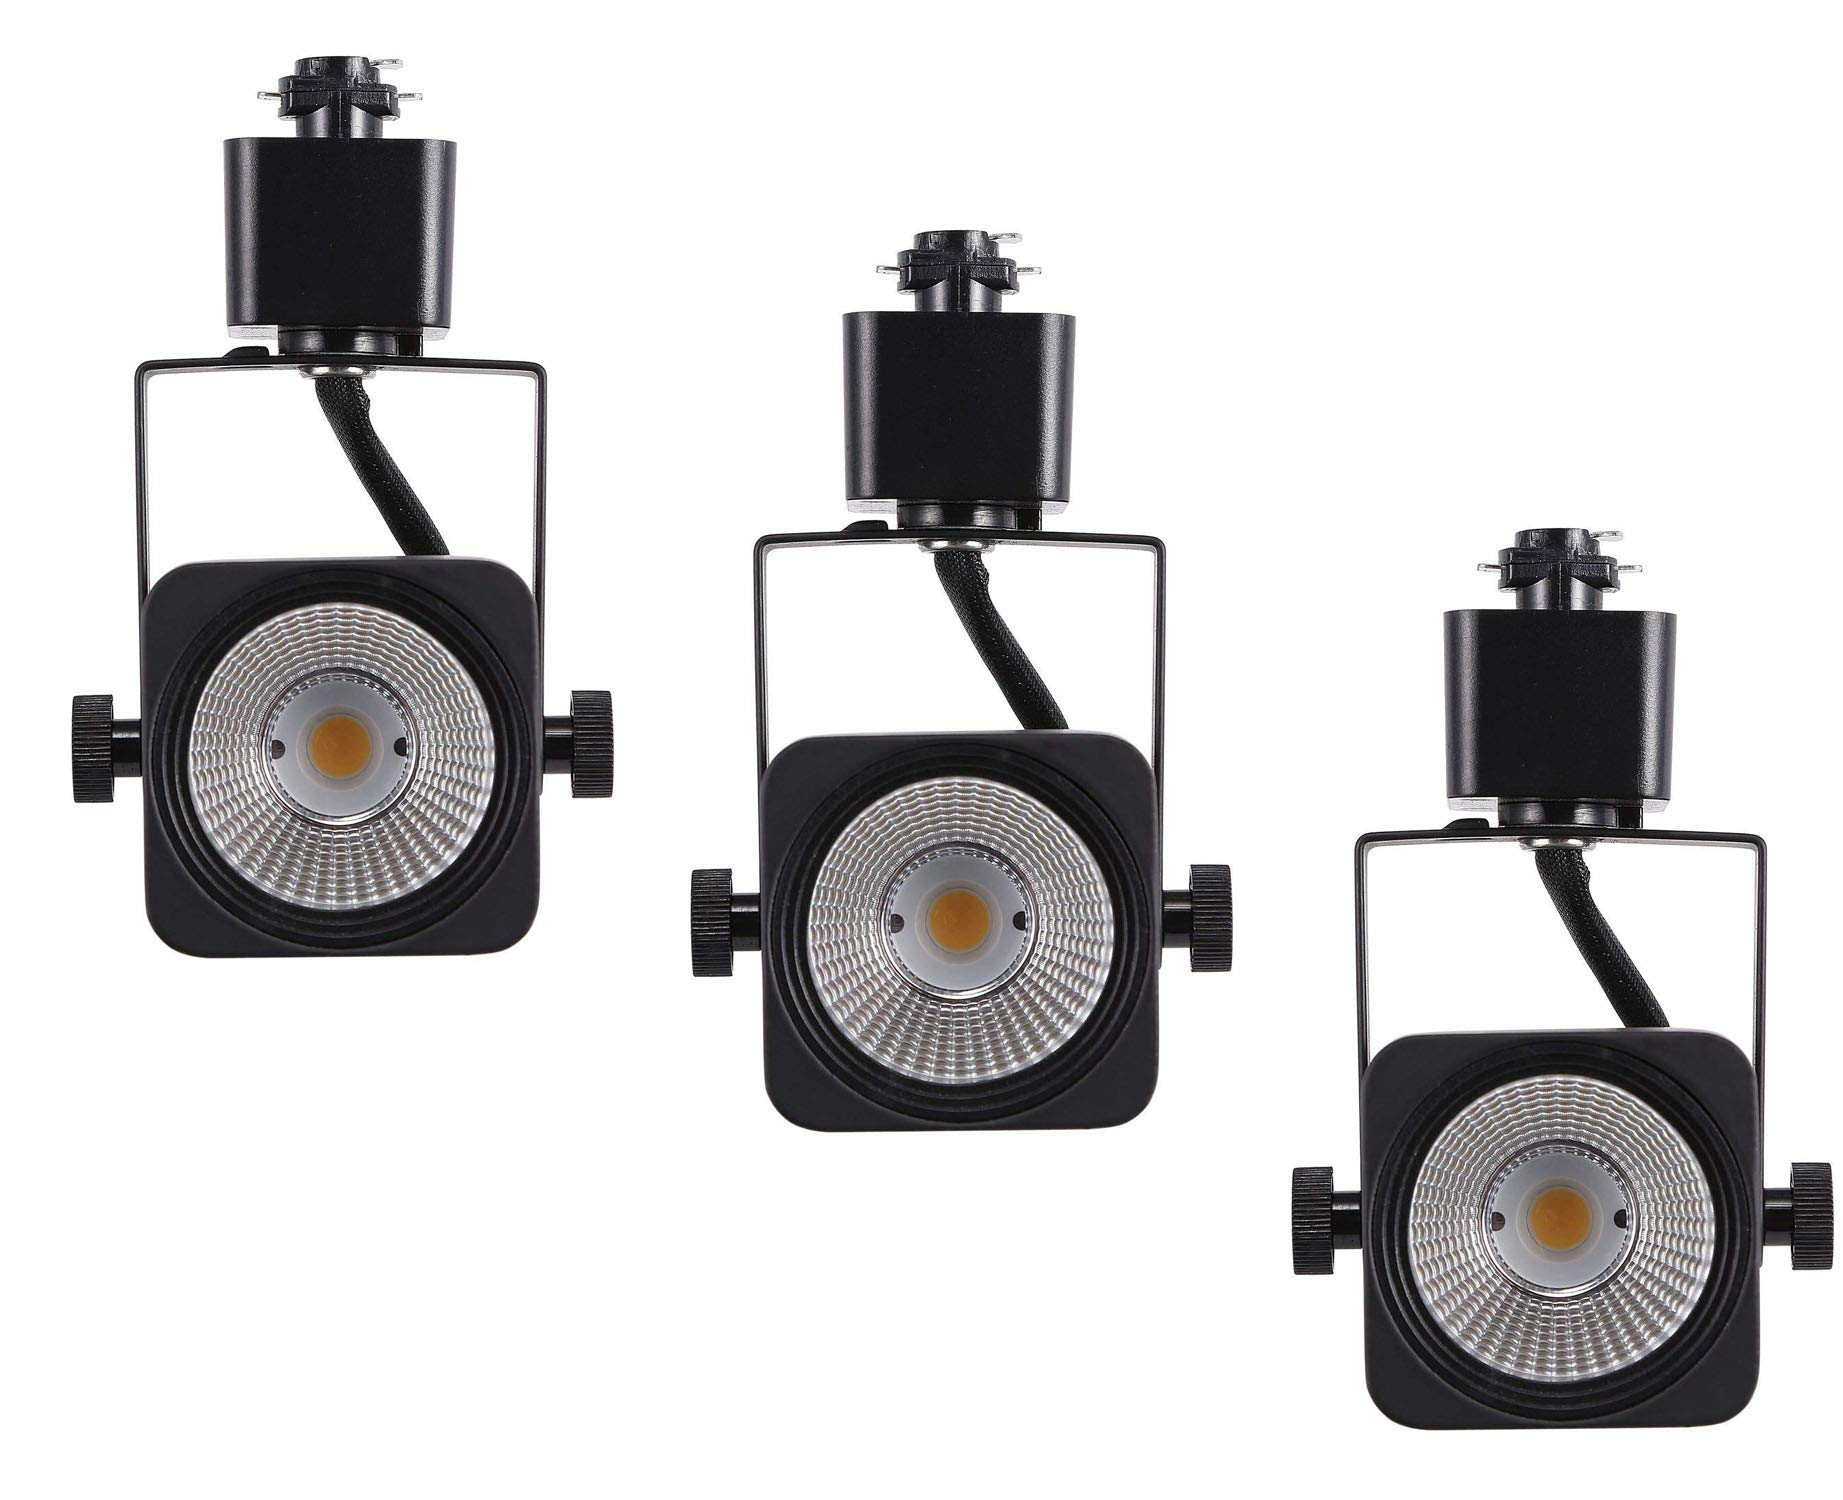 Cloudy Bay 8W Dimmable LED Track Lights Head,CRI 90+ Warm White,Adjustable Tilt Angle Track Lighting Fixture,40° Angle for Accent Retail,Black Finish, Halo Type - 3 Pack by CLOUDY BAY